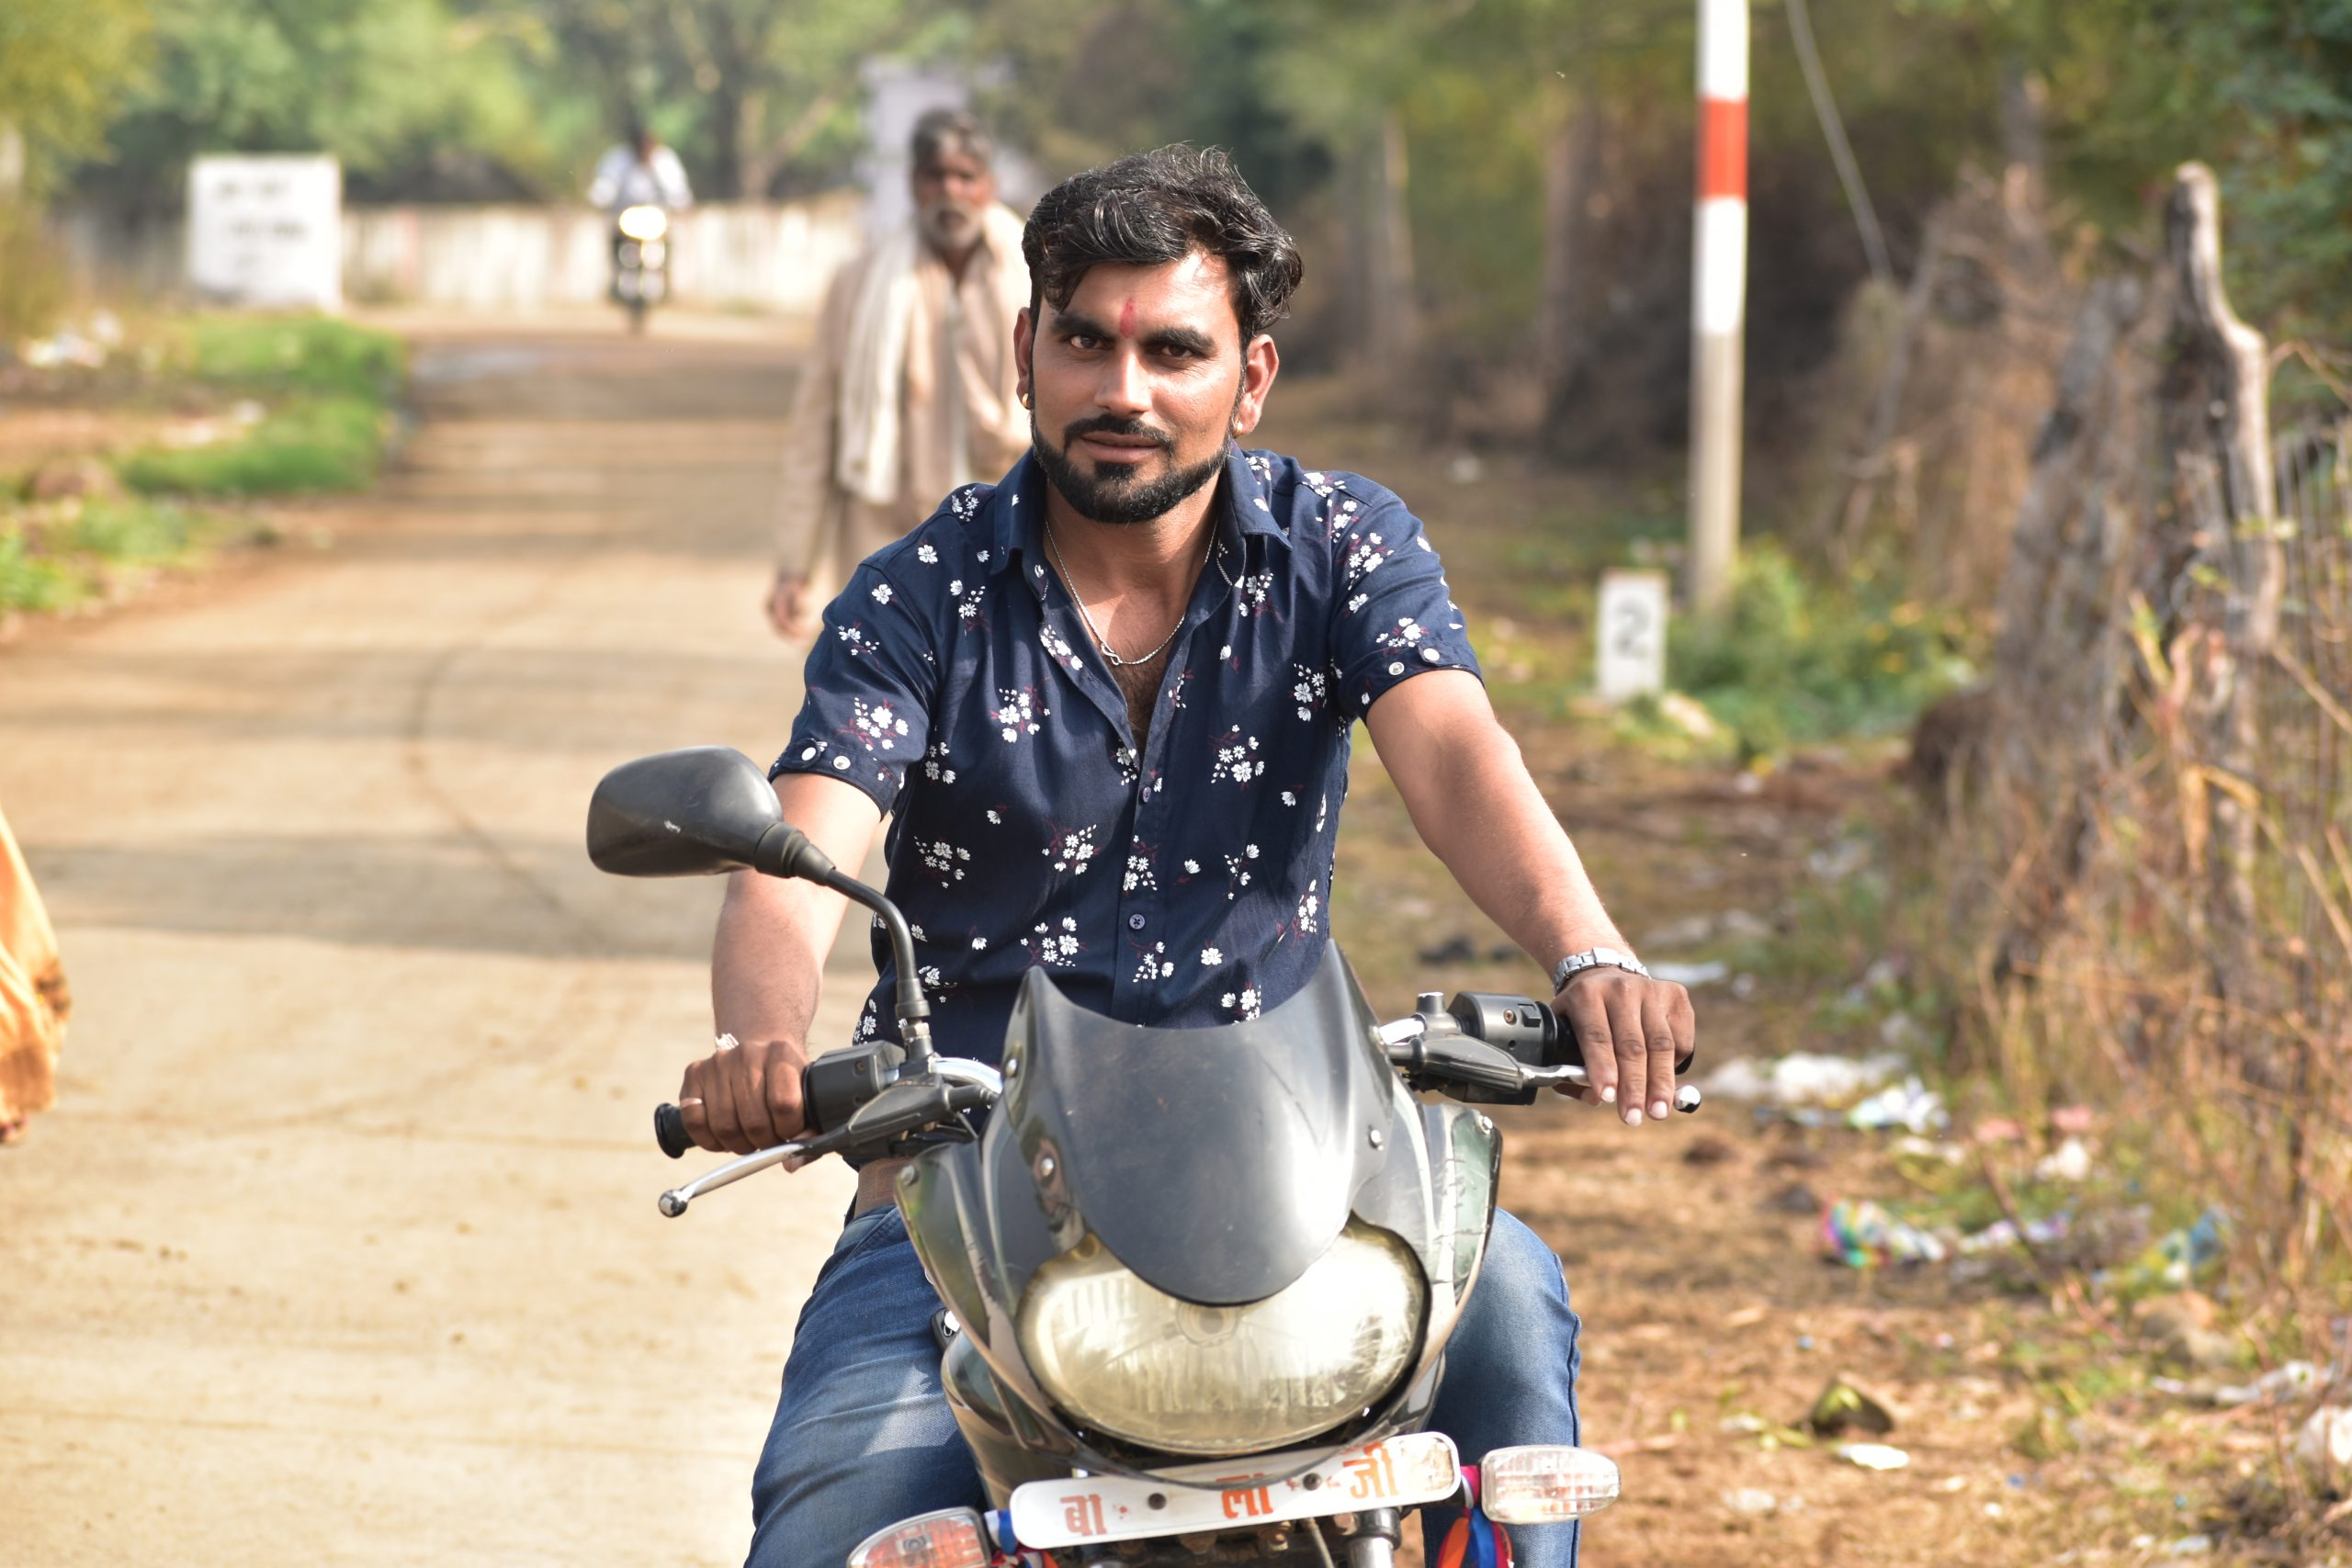 A village man driving a bike